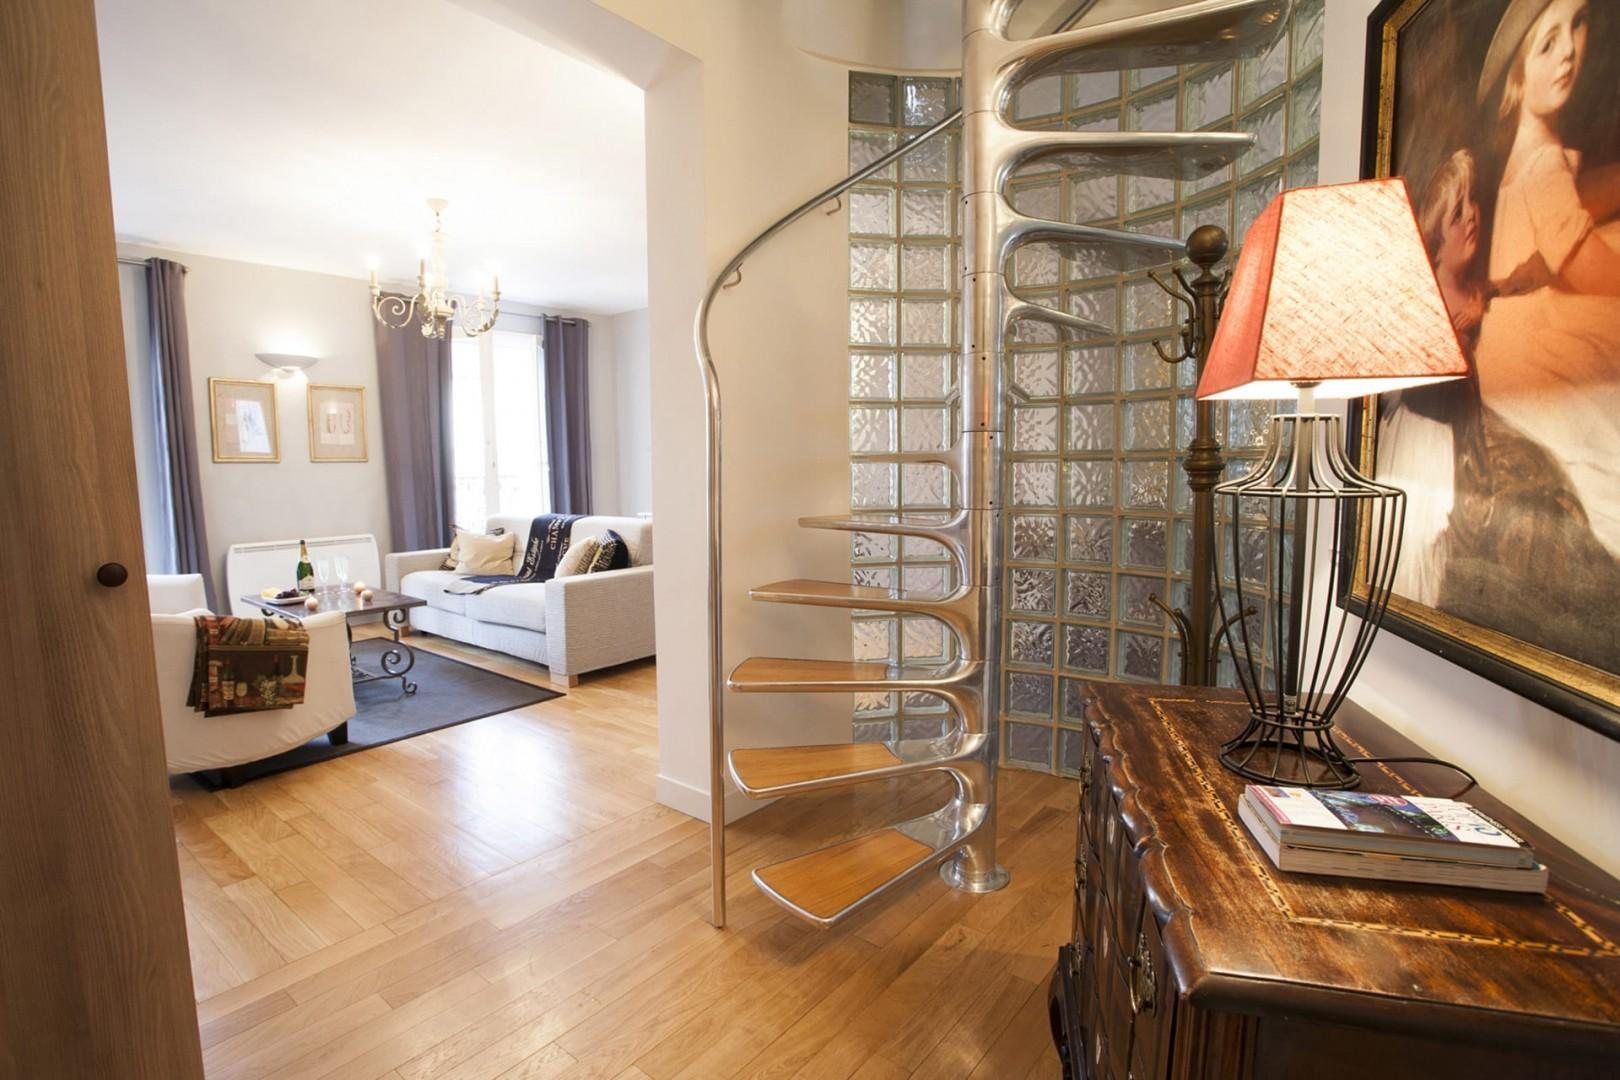 The spiral staircase adds even more flair to the beautiful apartment!